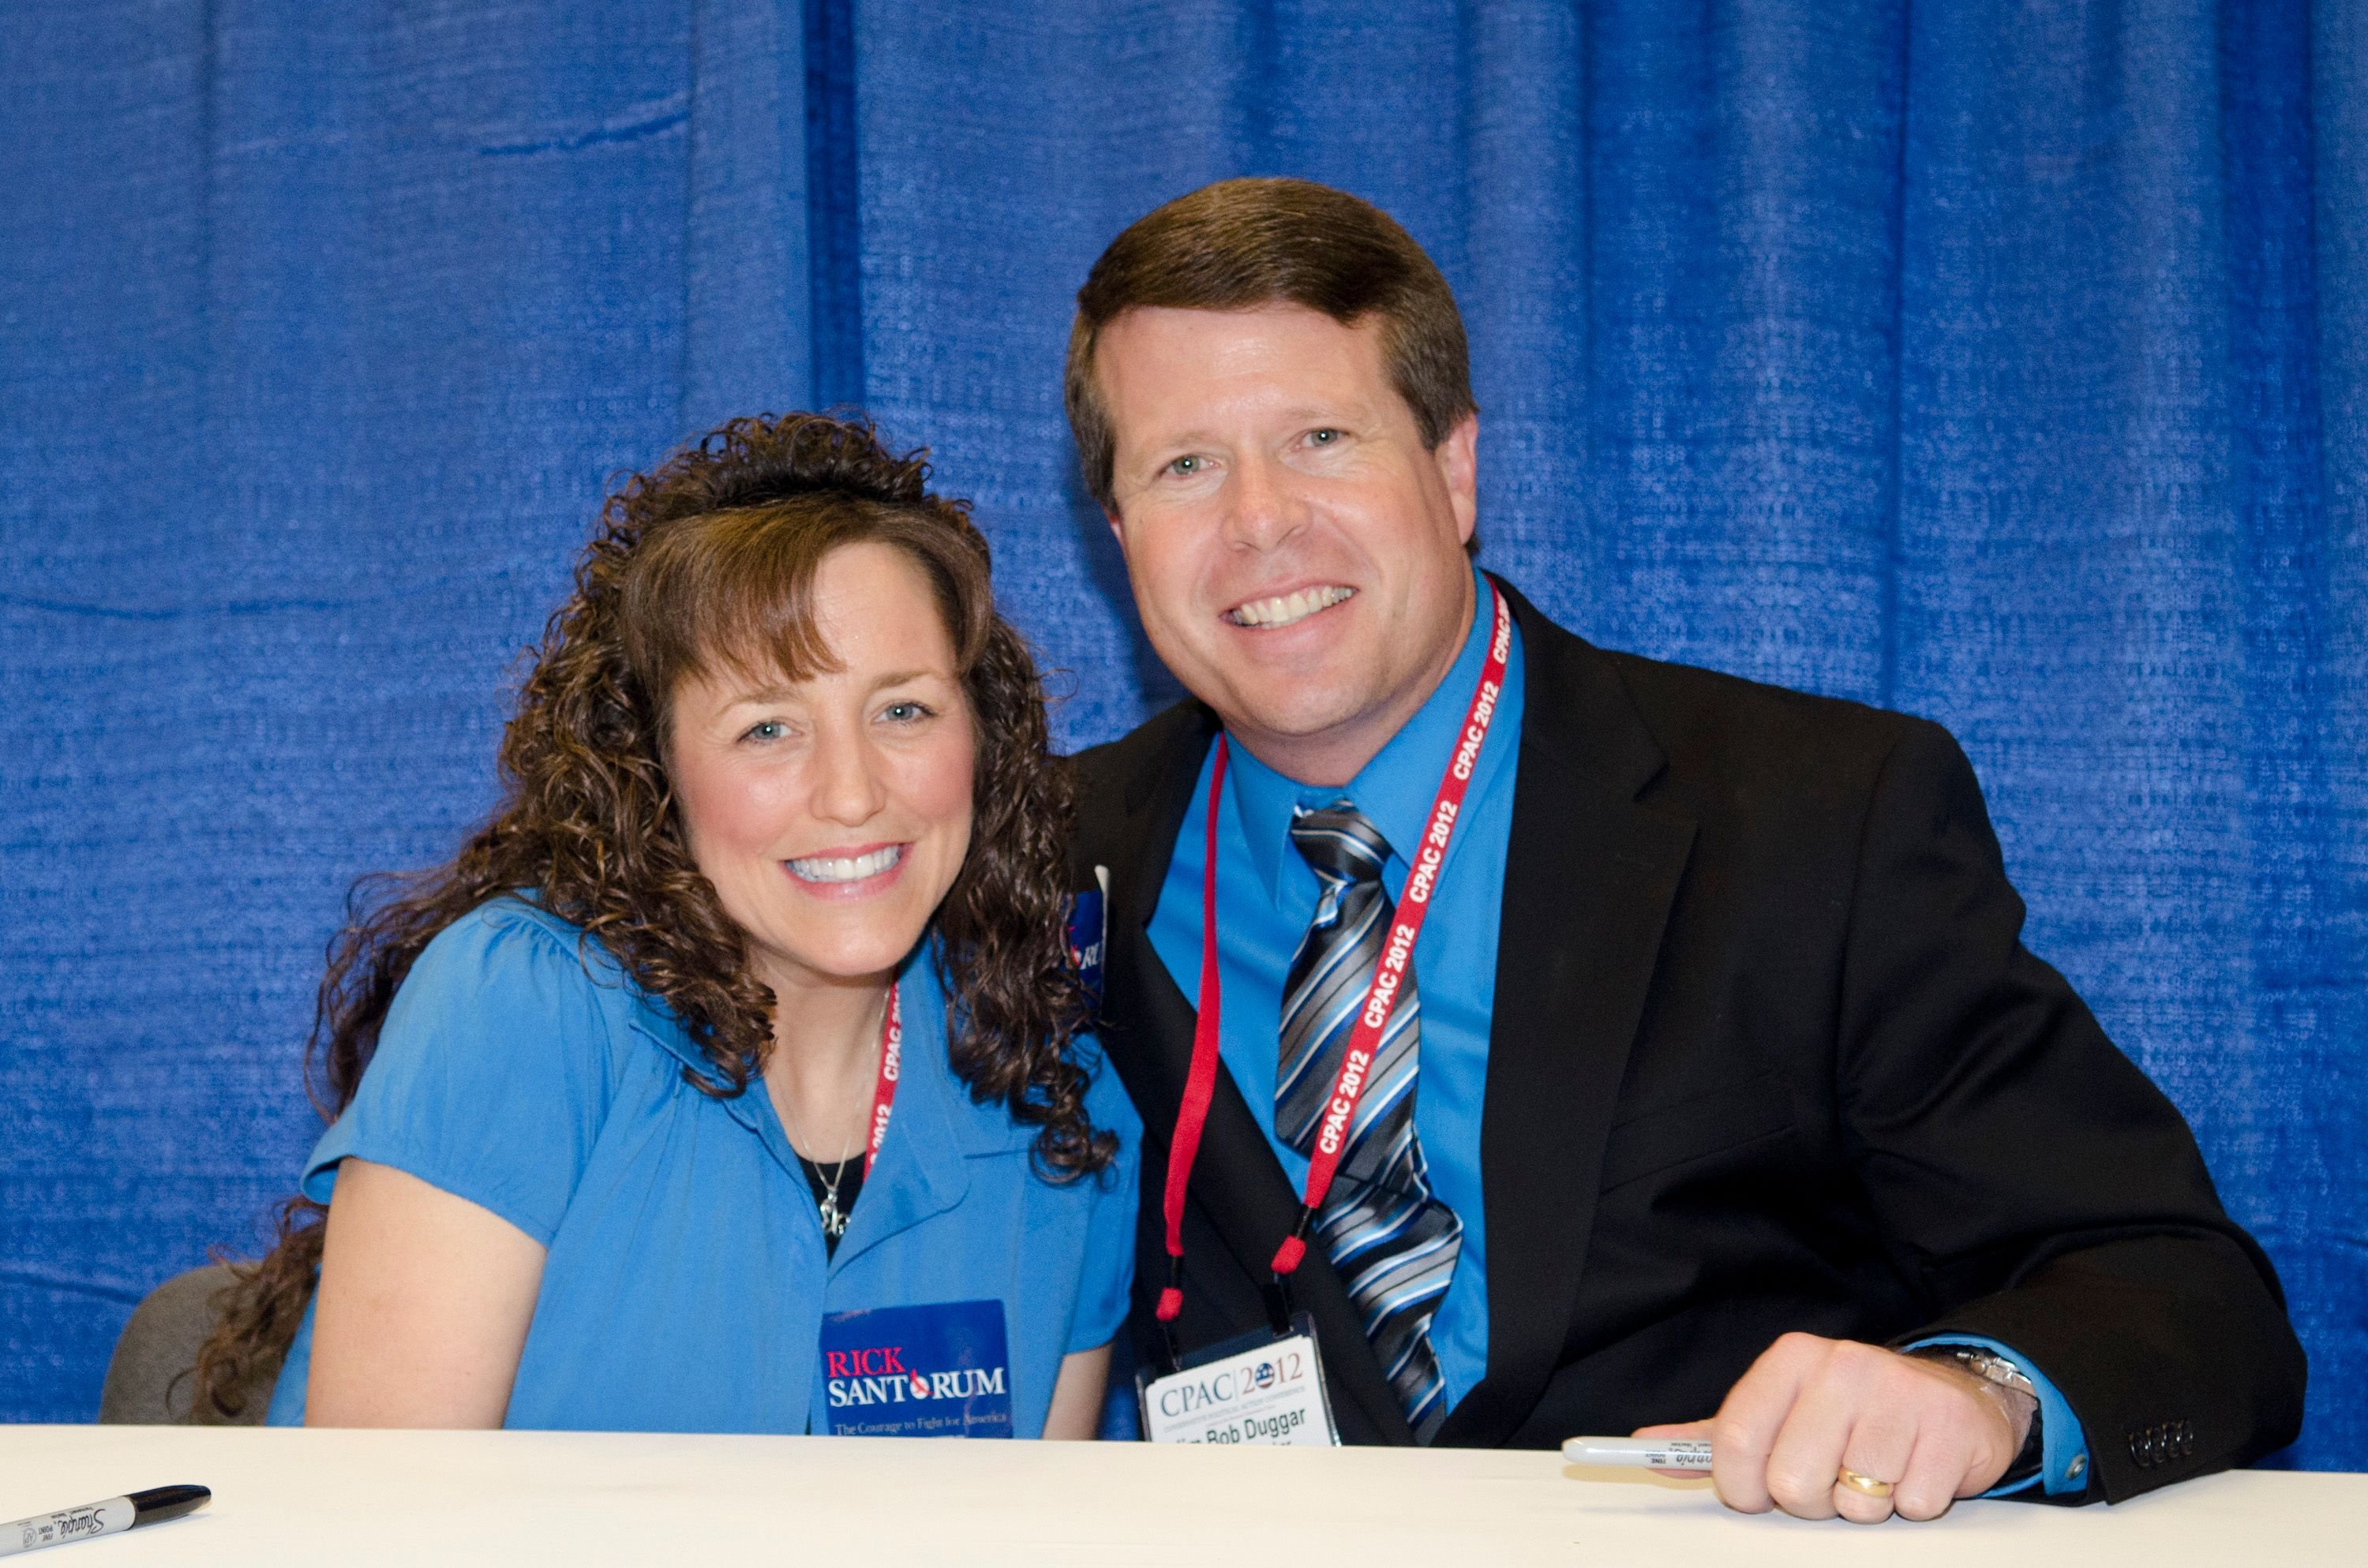 """Michelle Duggar and Jim Bob Duggar promote their book """"A Love That Multiplies"""" during the Conservative Political Action Conference (CPAC) at the Marriott Wardman Park on February 10, 2012 